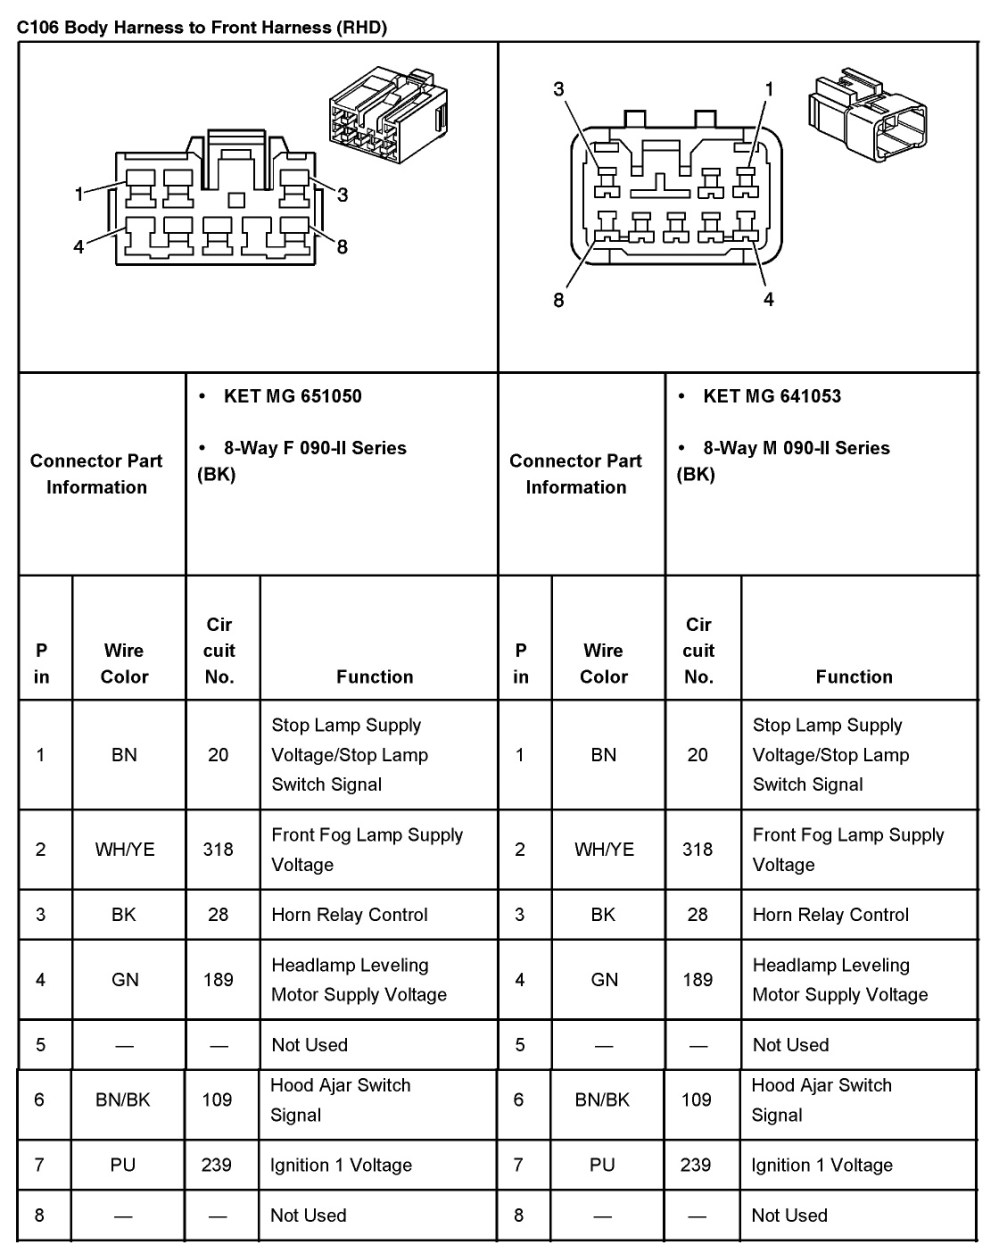 medium resolution of 2005 aveo master connector list and diagrams rh aveoforum com chevrolet aveo 2006 radio wiring diagram